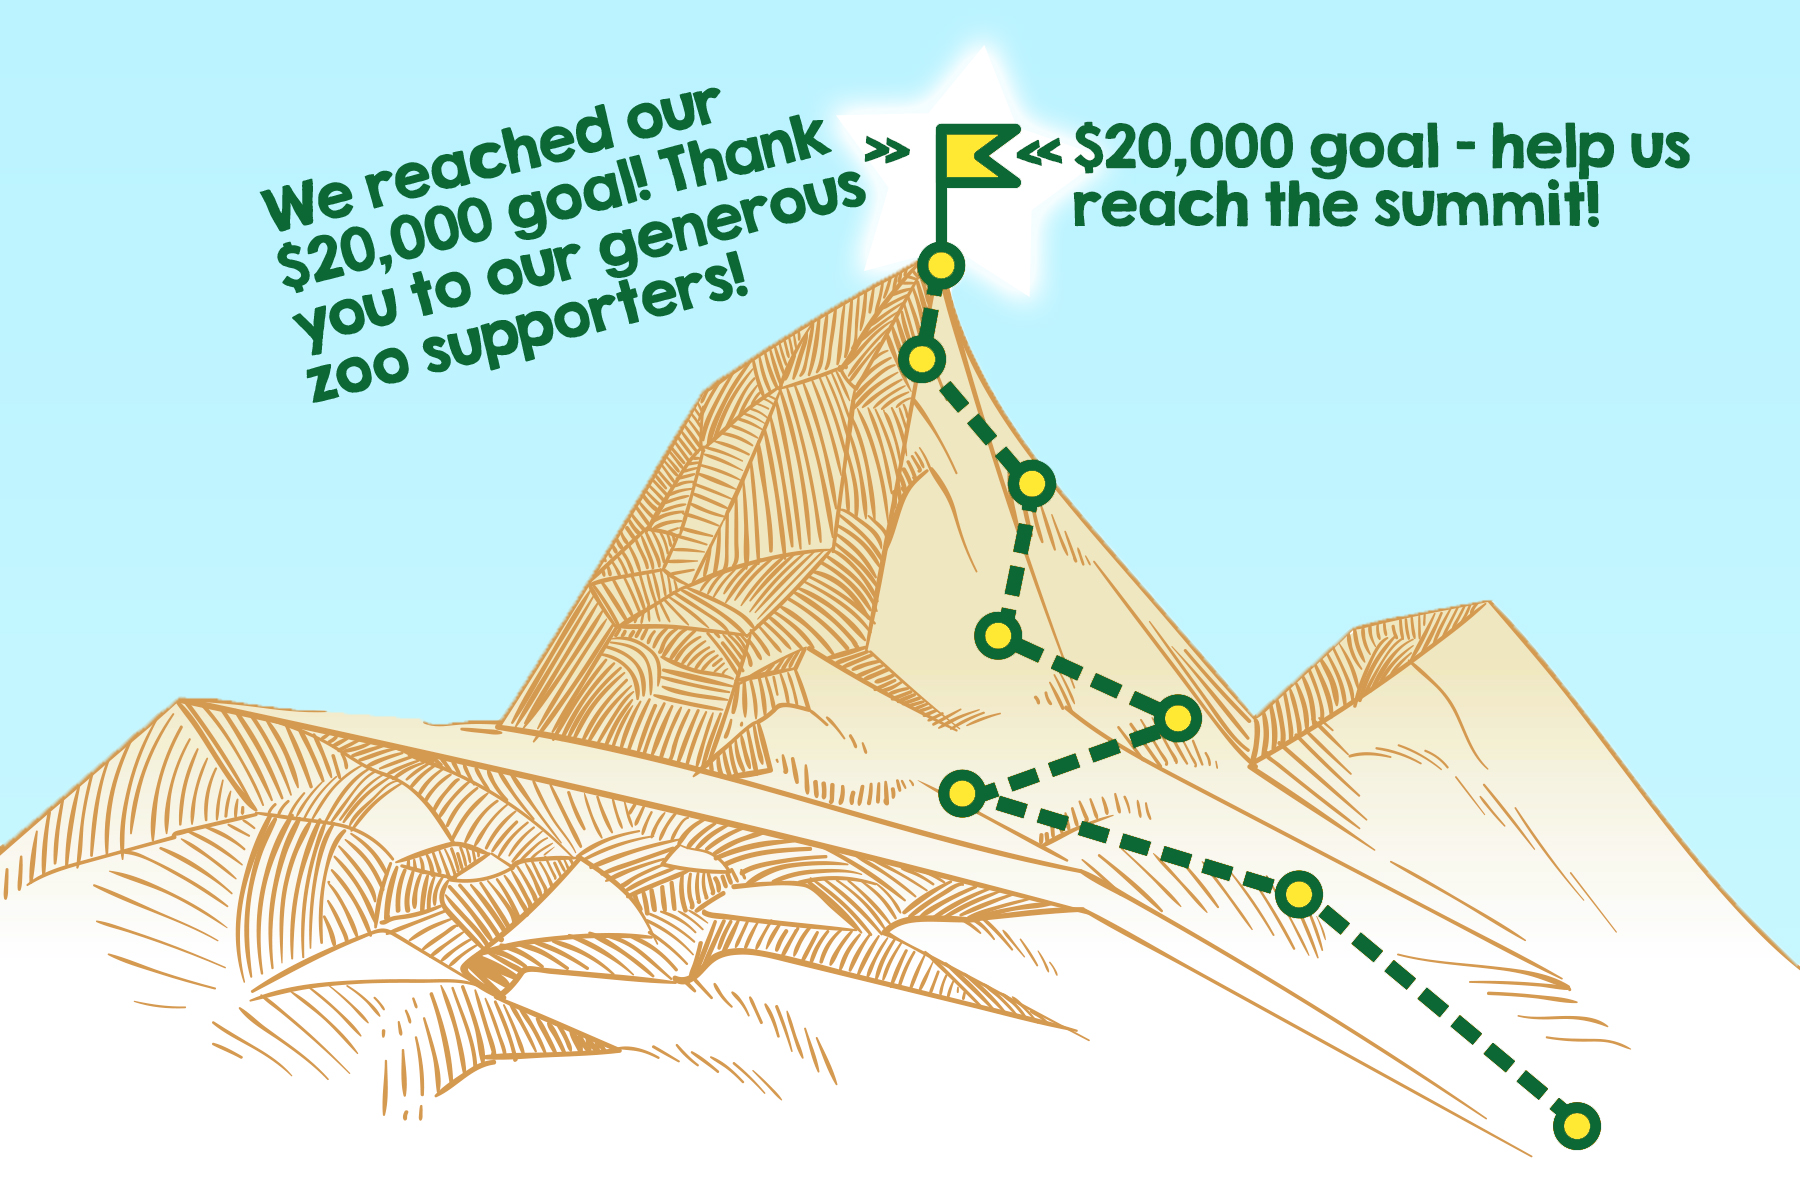 We reached our $20,000 goal thanks to our generous donors!